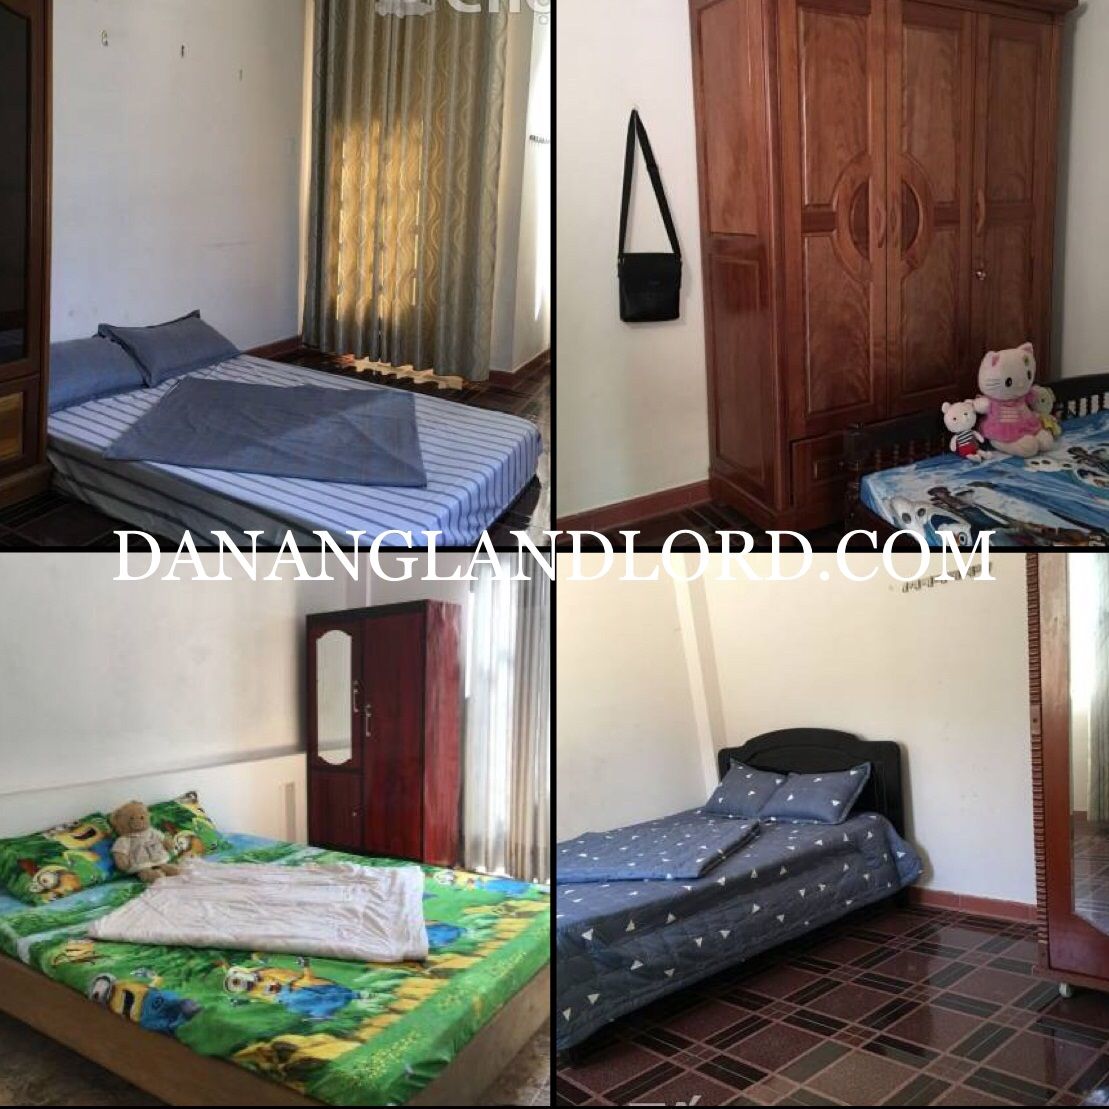 4 bedrooms house for rent, near Pham Van Dong beach, fully equipped –  DI4V